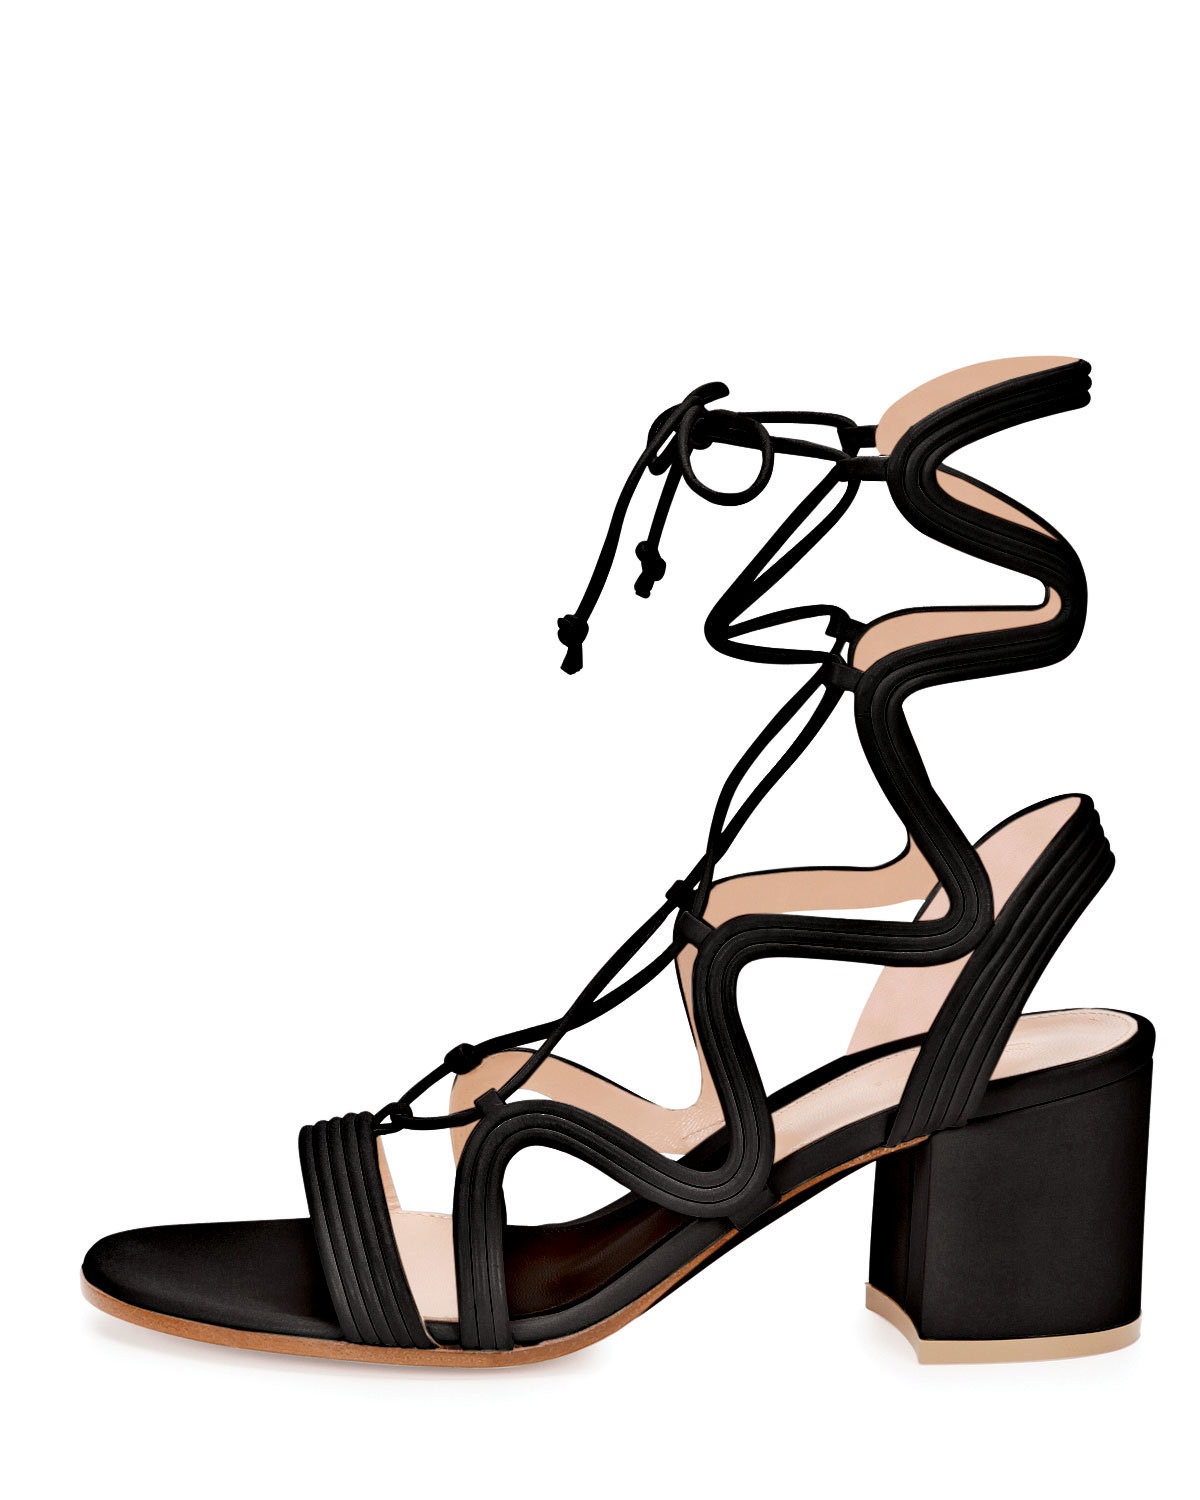 Low Heel Gladiator Sandals - Is Heel